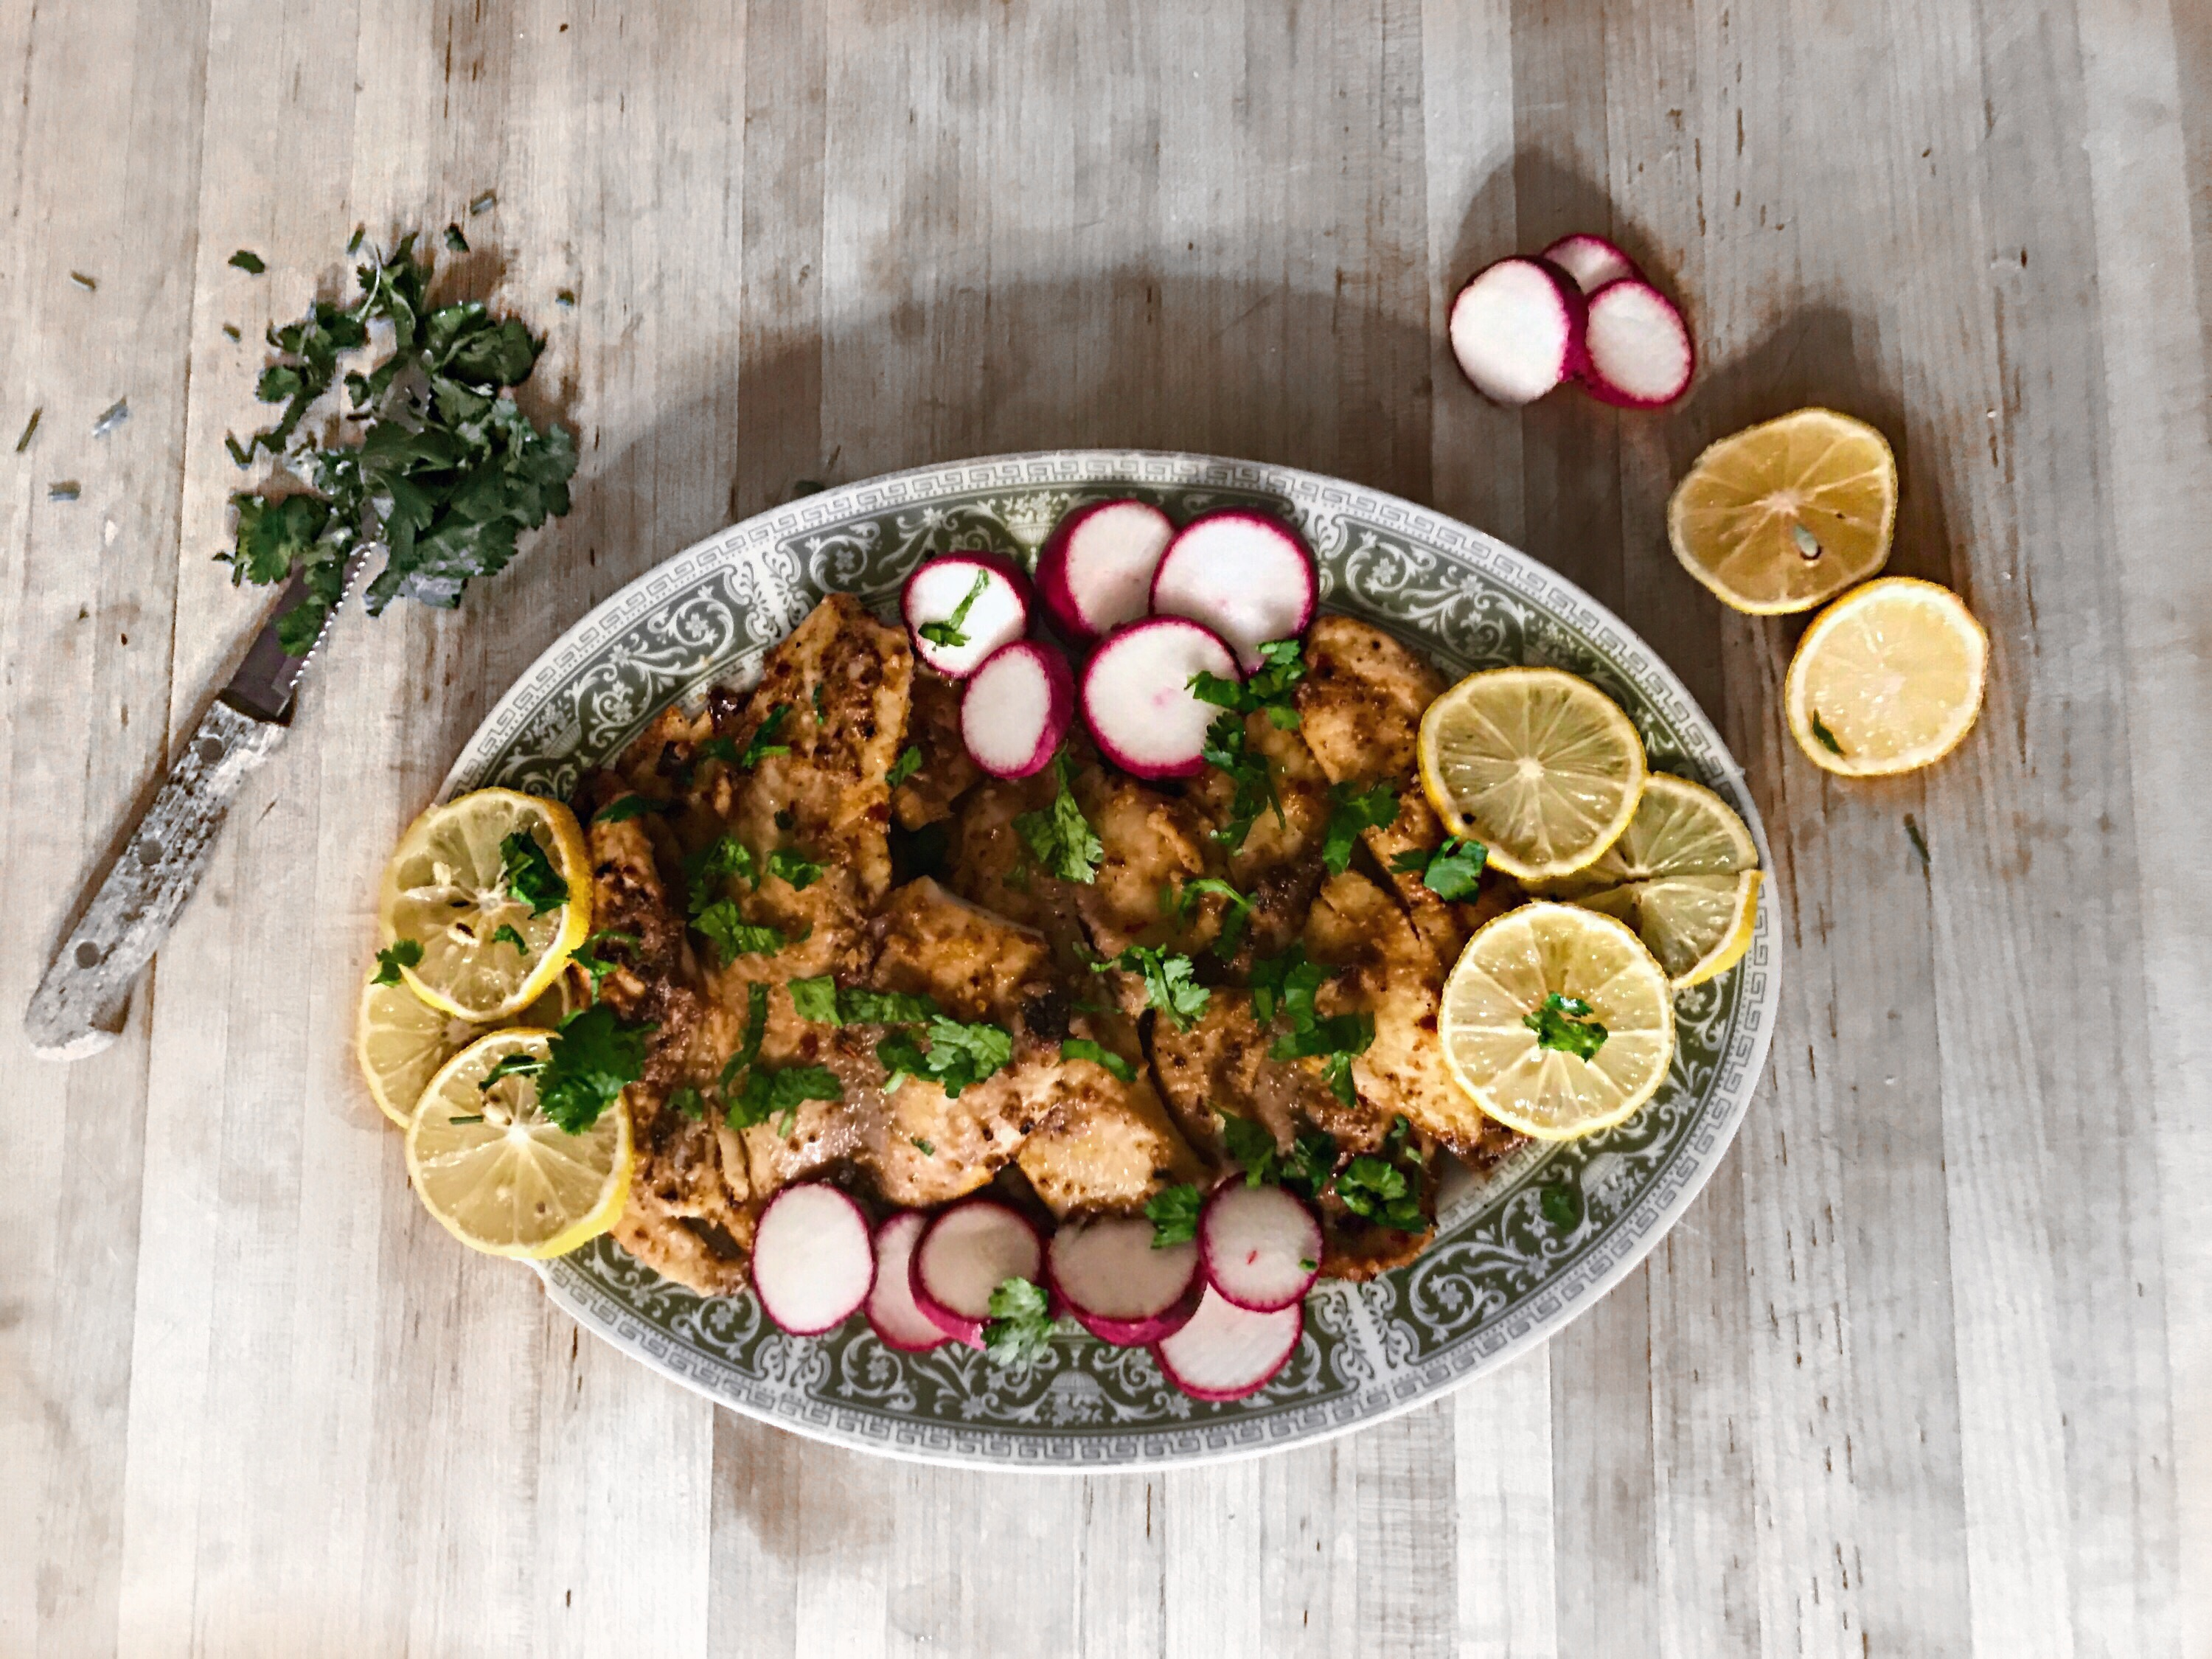 Asian Fusion Grilled Chicken